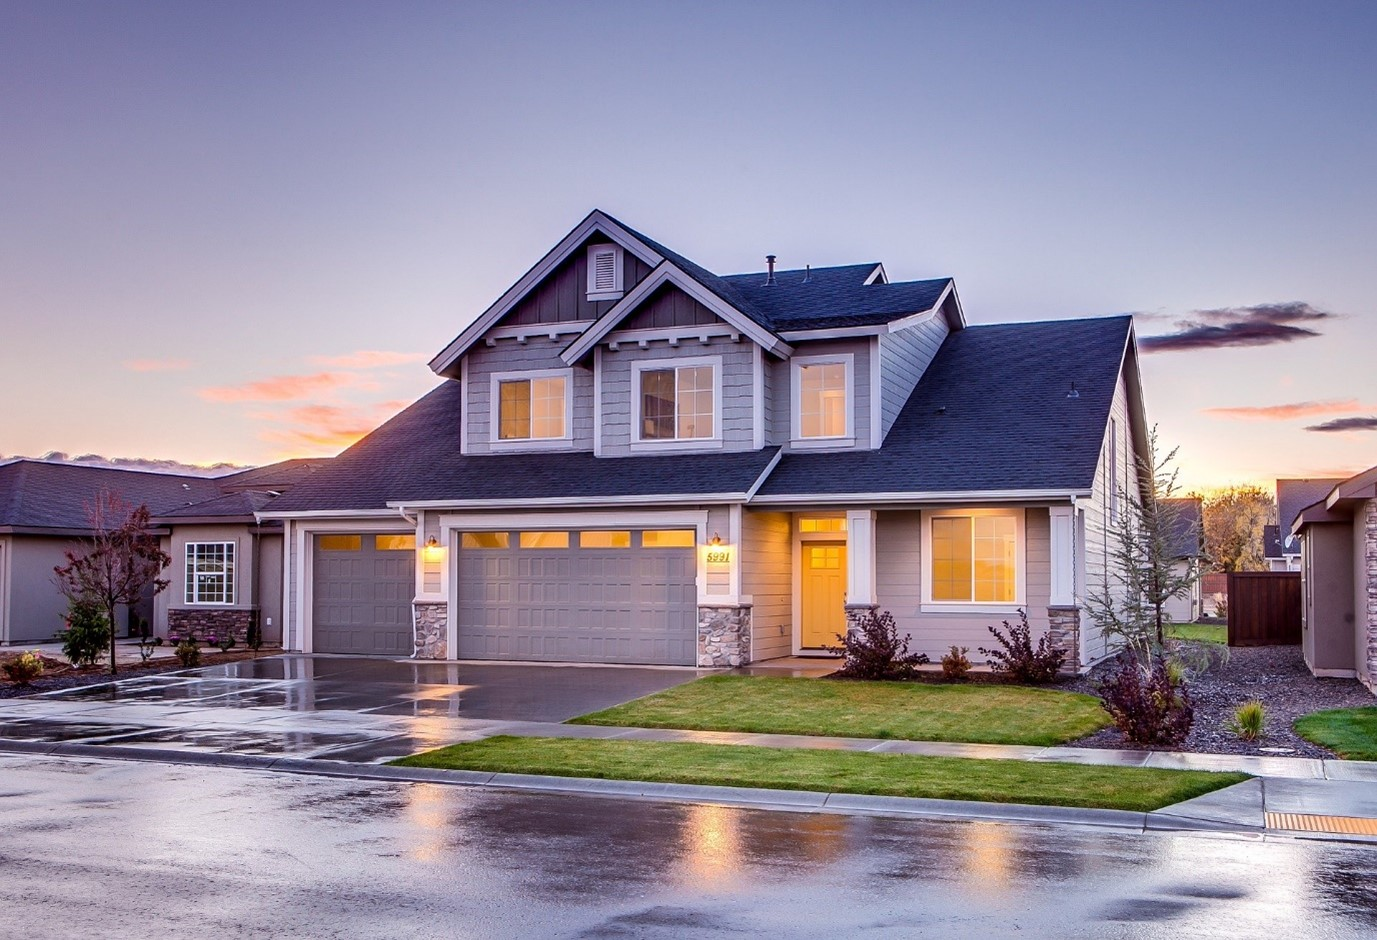 How Much Does It Cost to Install a Driveway?